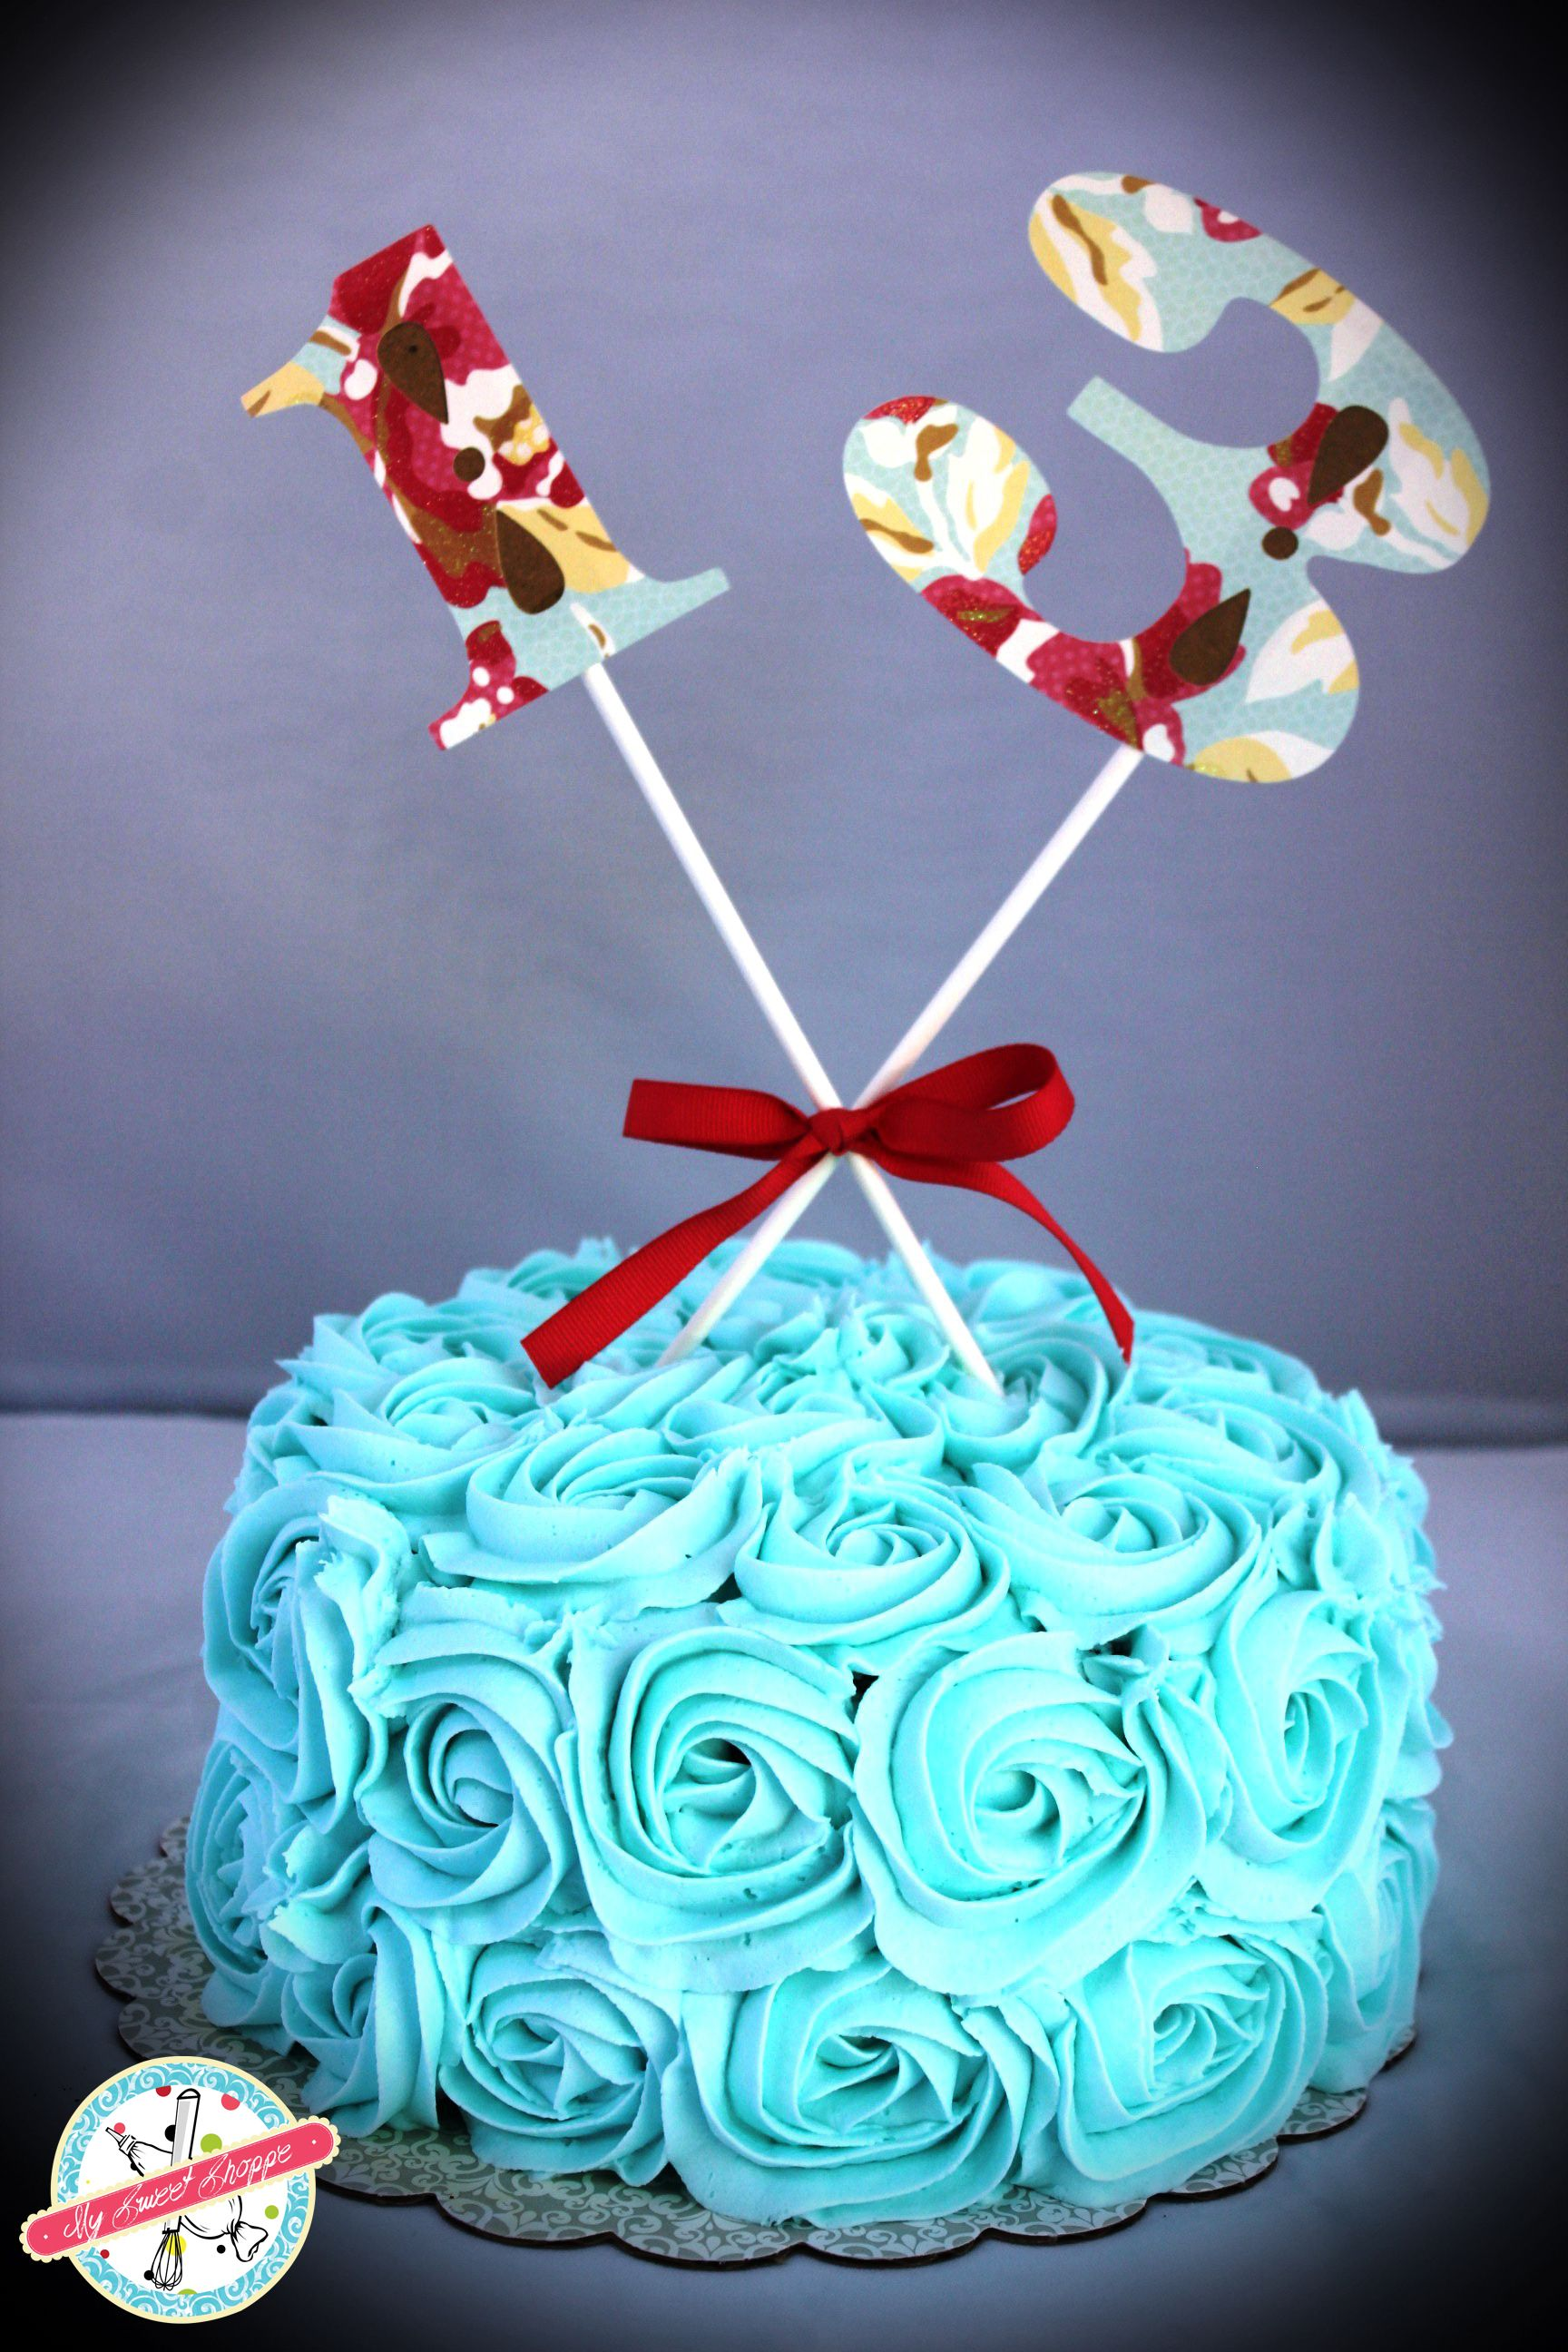 Teal Turquoise Rose Cake For 13 Year Old